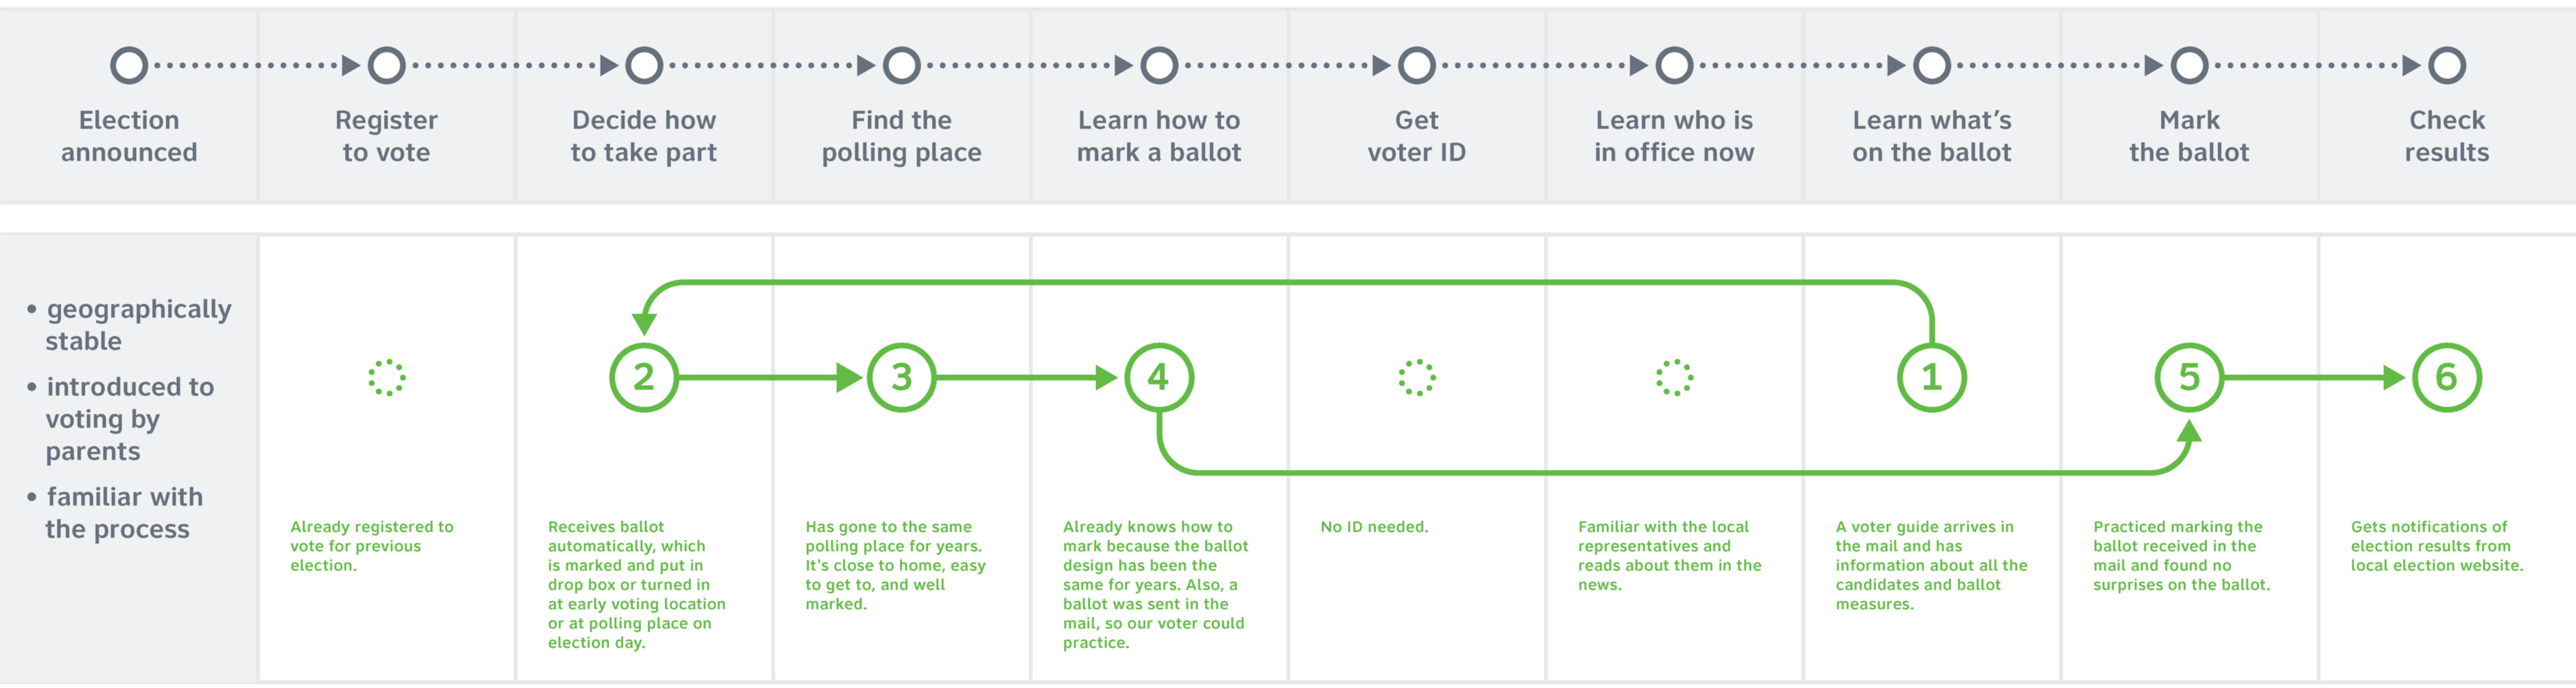 A diagram of steps in the happy path of the voter journey as described in the text